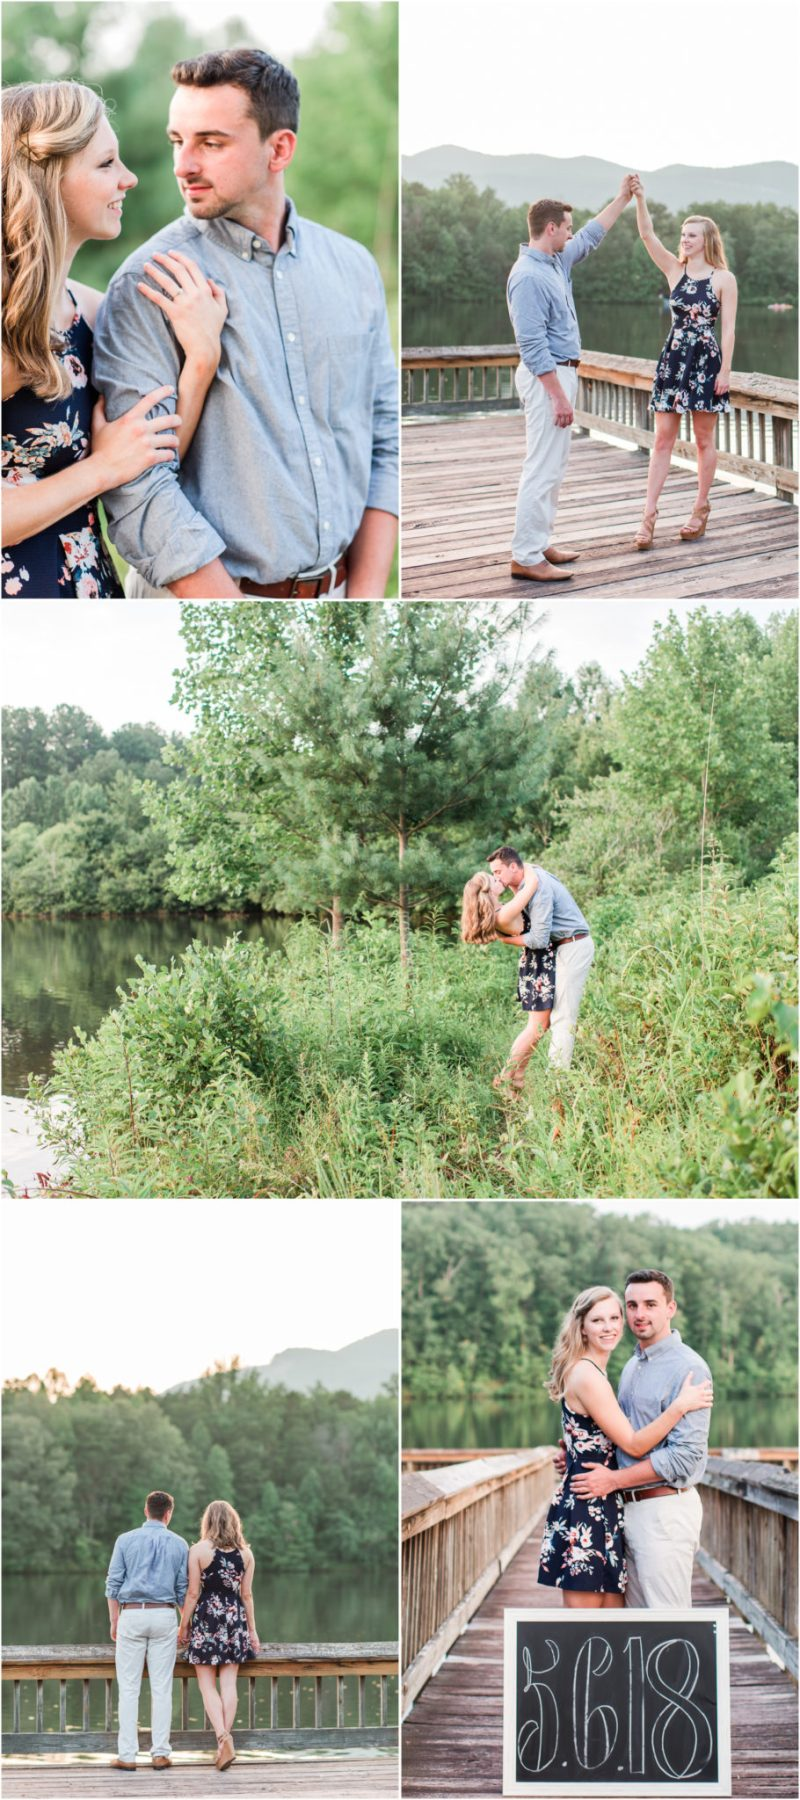 Summer Engagement Session by the lake